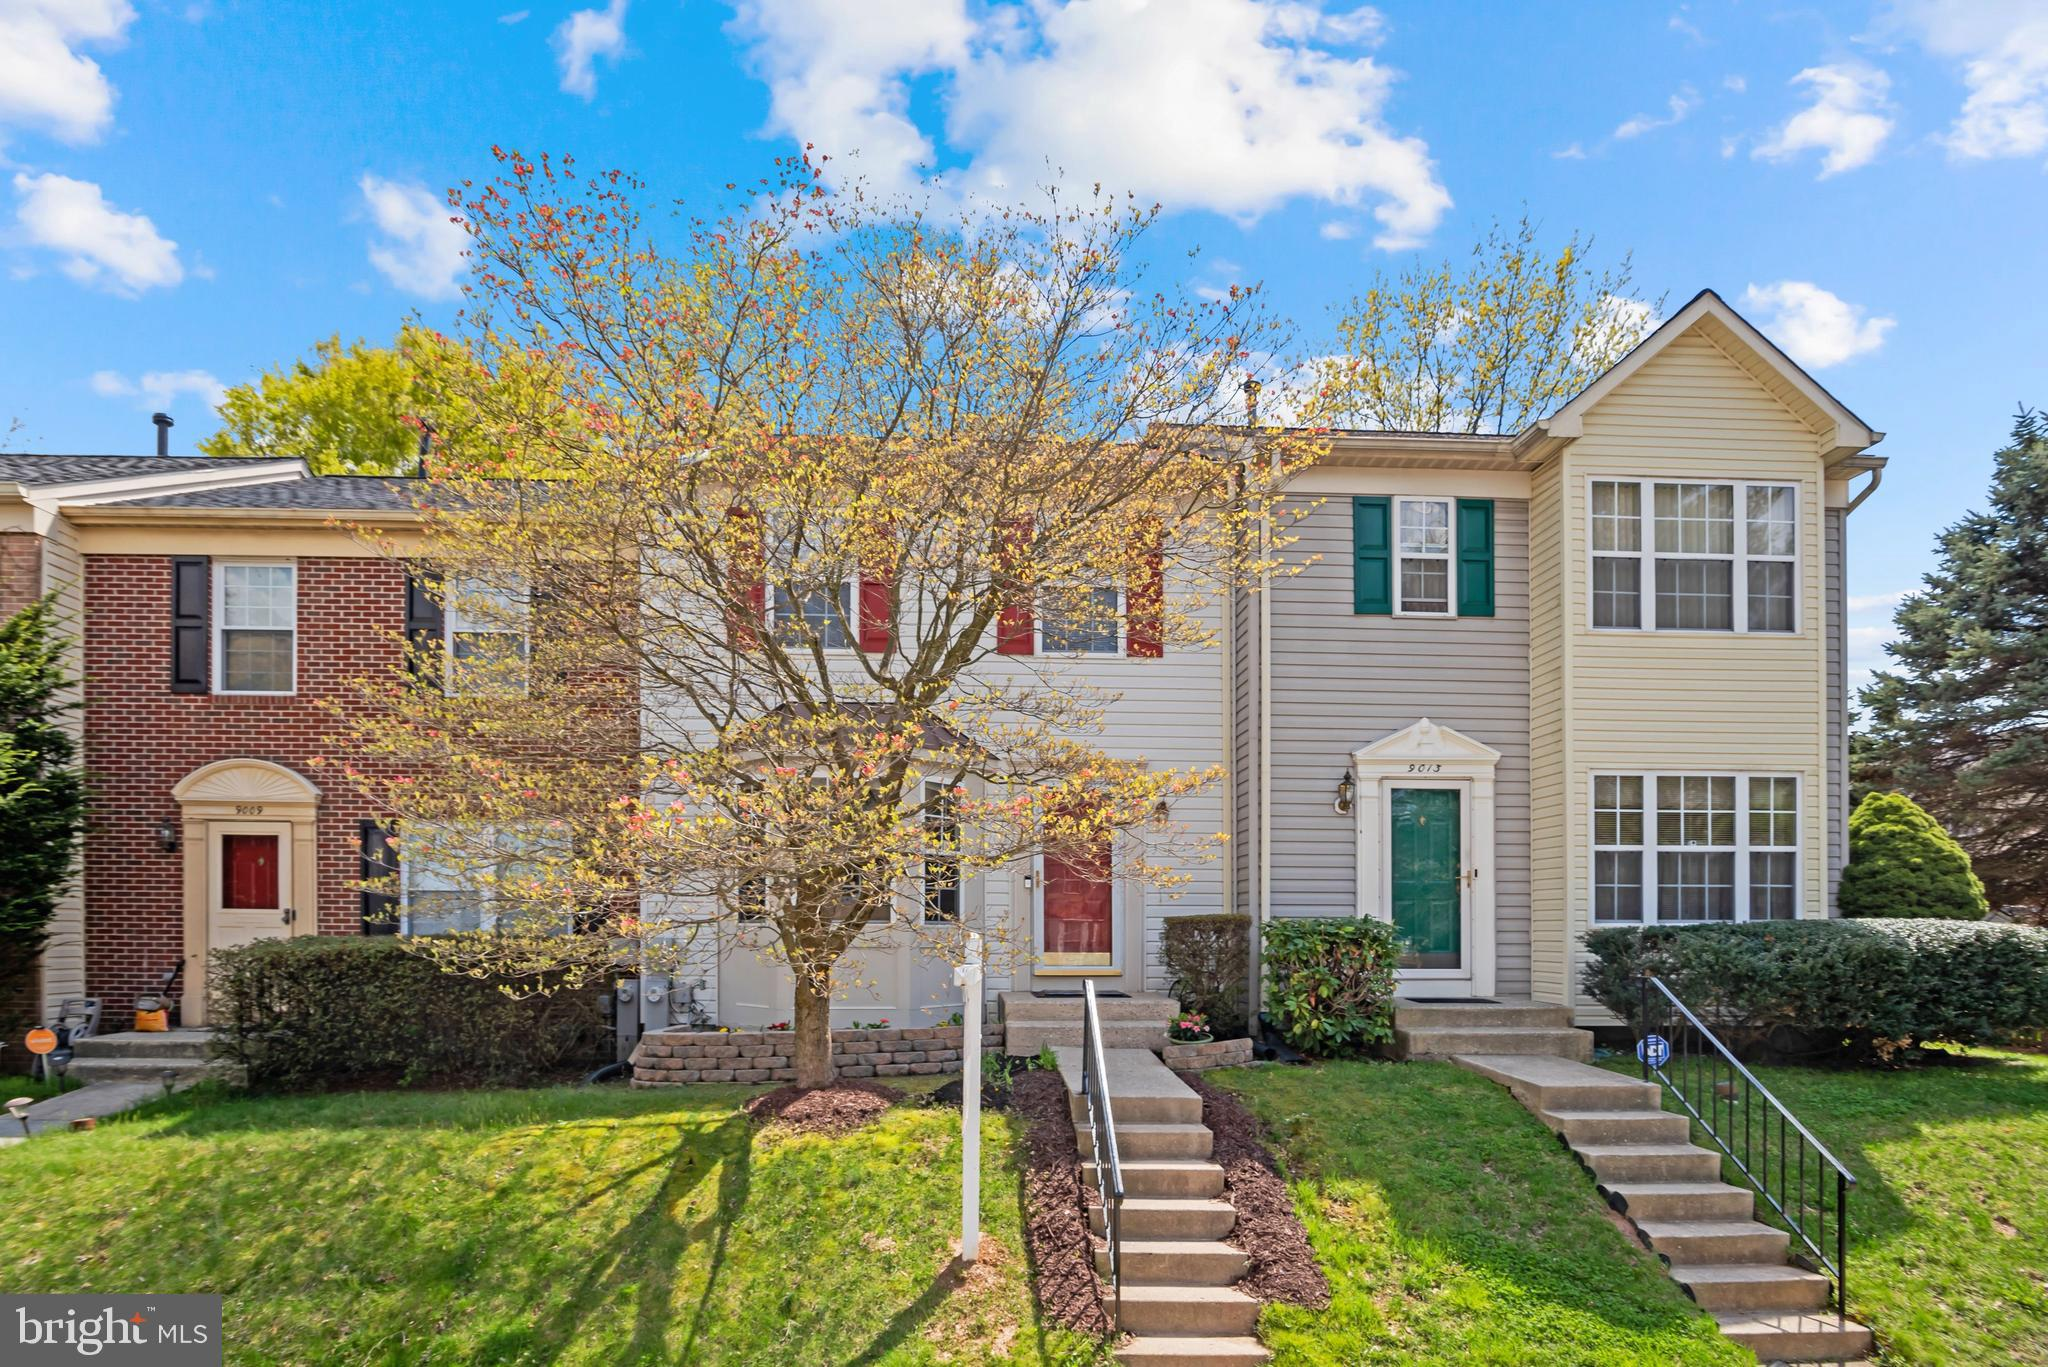 Updated, rarely available home in the sought-after Oakwood Village Community. Natural light that dances throughout the main level, highlighting gorgeous hardwood floors (2020). The spacious kitchen features recessed lighting, ceiling fan, and new appliances (2019). Enjoy a meal in the breakfast nook as you watch birds and butterflies delight in your beautifully landscaped front yard on warm spring days. The open floor plan of the main level offers ample space to gather with those you care about as laughter and conversation fill your home. Share a meal in your dining room, host a movie night in your family room, or grill out on your deck as you overlook the woods behind your home. The lower level is perfect for cuddling up on chilling evenings in front of your wood burning fireplace. Updated laundry and storage (2018) complete the lower level. When you are ready to relax ascend to your top level to your private primary bedroom with an ensuite full bath. Stay cool in the summer and warm in winter, HVAC system replaced in 2017 and new roof installed 2015